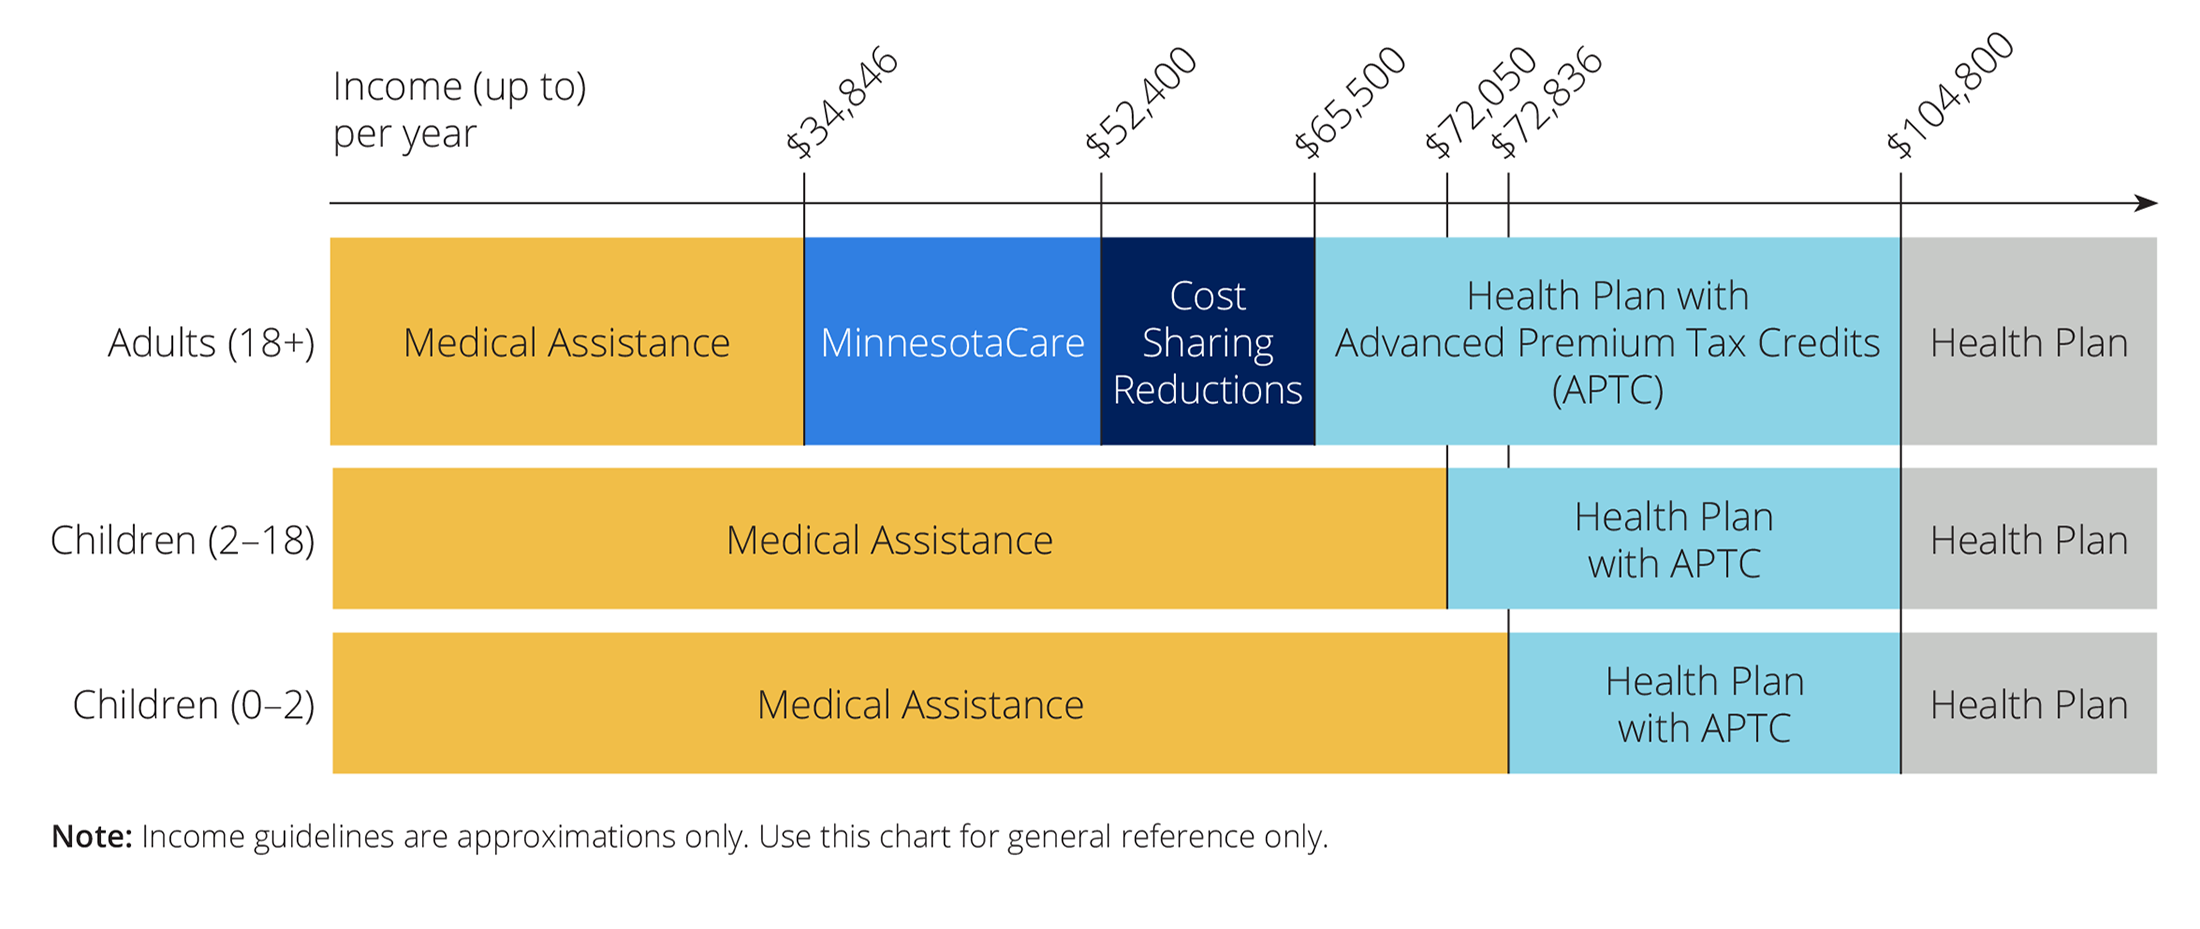 Chart showing income guidelines for Medical Assistance